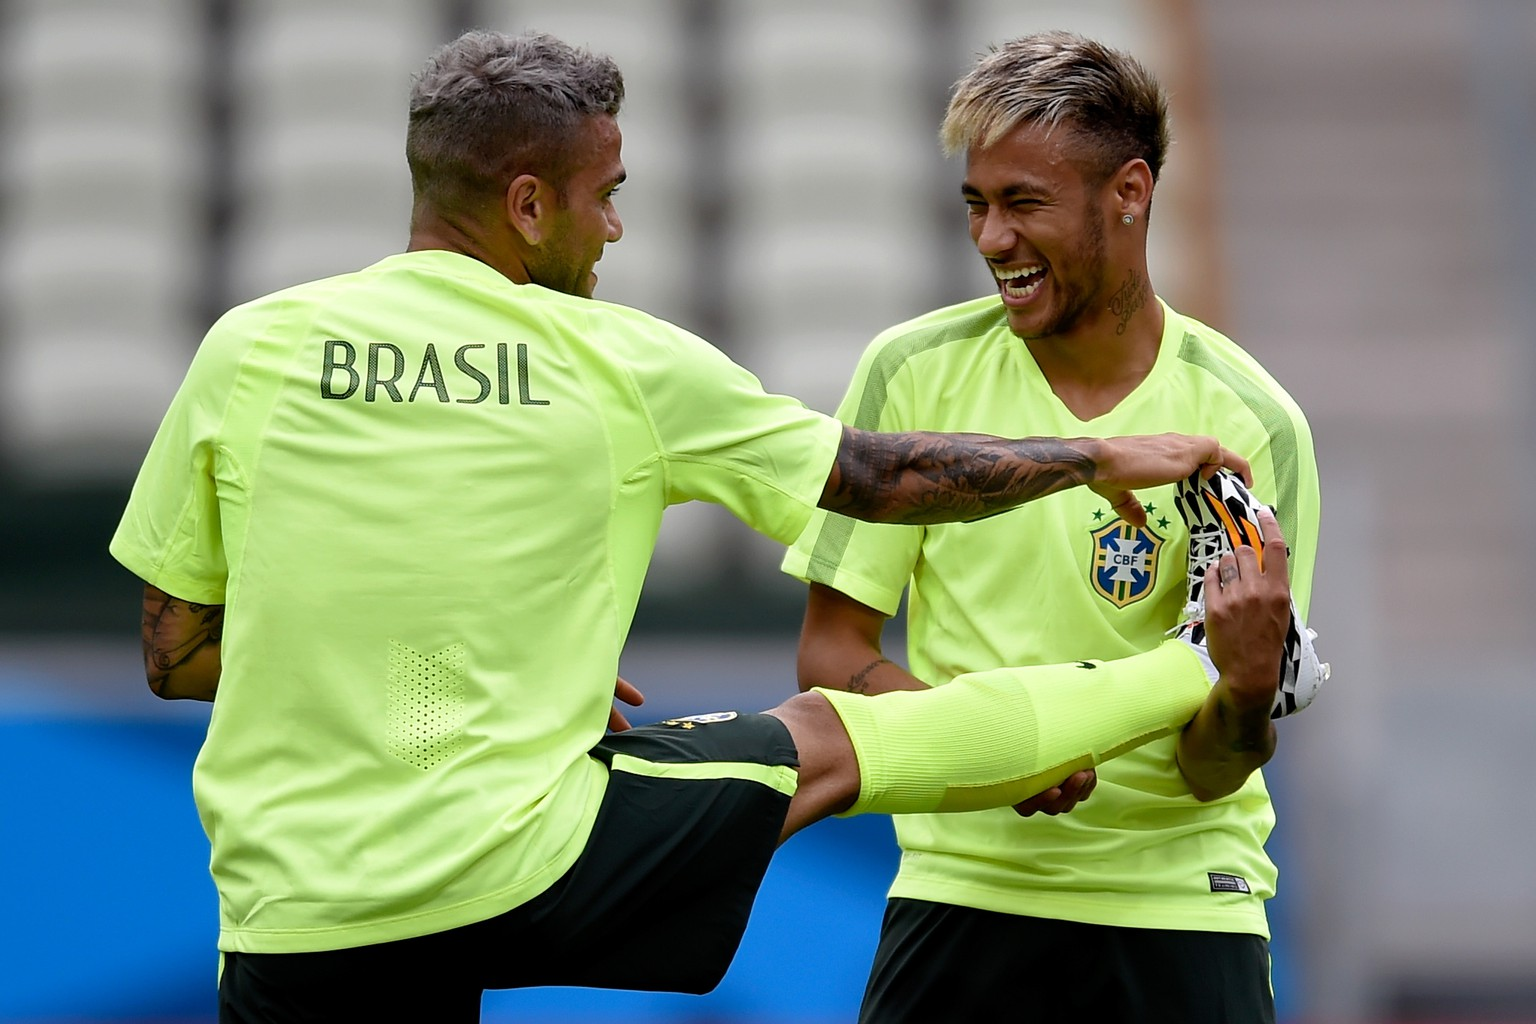 FORTALEZA, BRAZIL - JUNE 16:  Neymar (R) of Brazil jokes with a Daniel Alves during a training session at Castelao Stadium on June 16, 2014 in Fortaleza, Brazil.  (Photo by Buda Mendes/Getty Images)